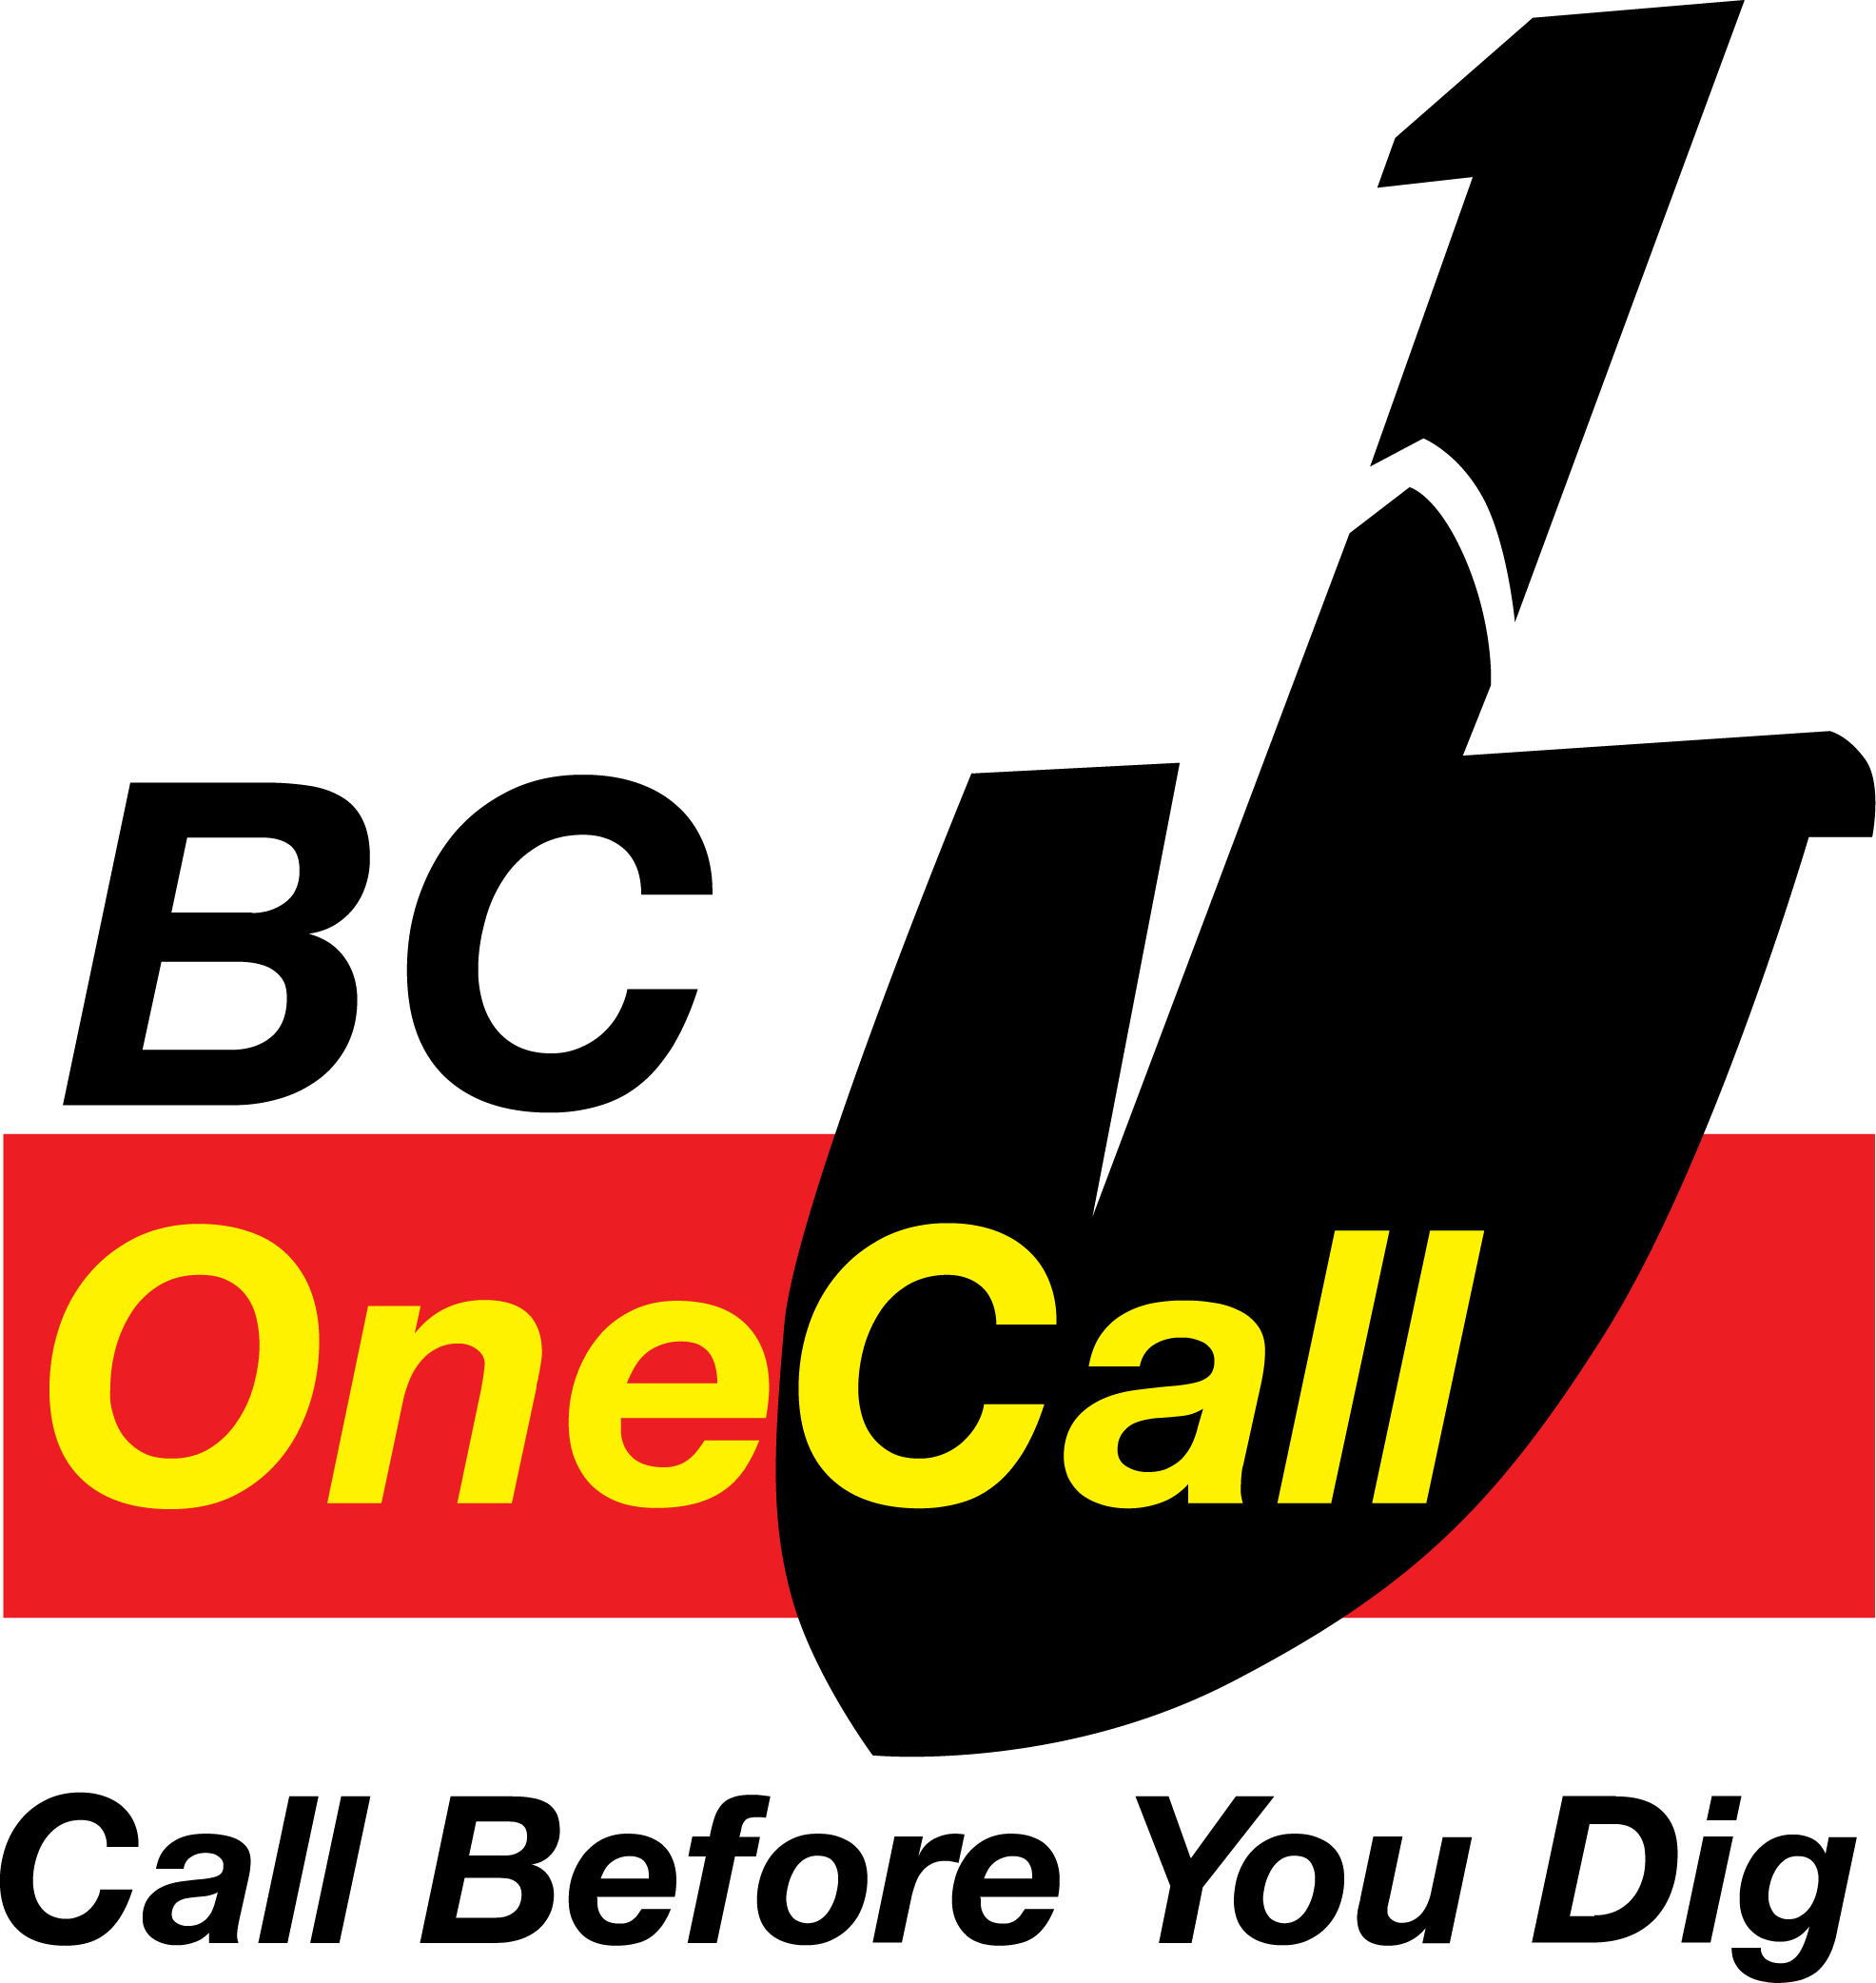 bc-one-call-vector-logo.png